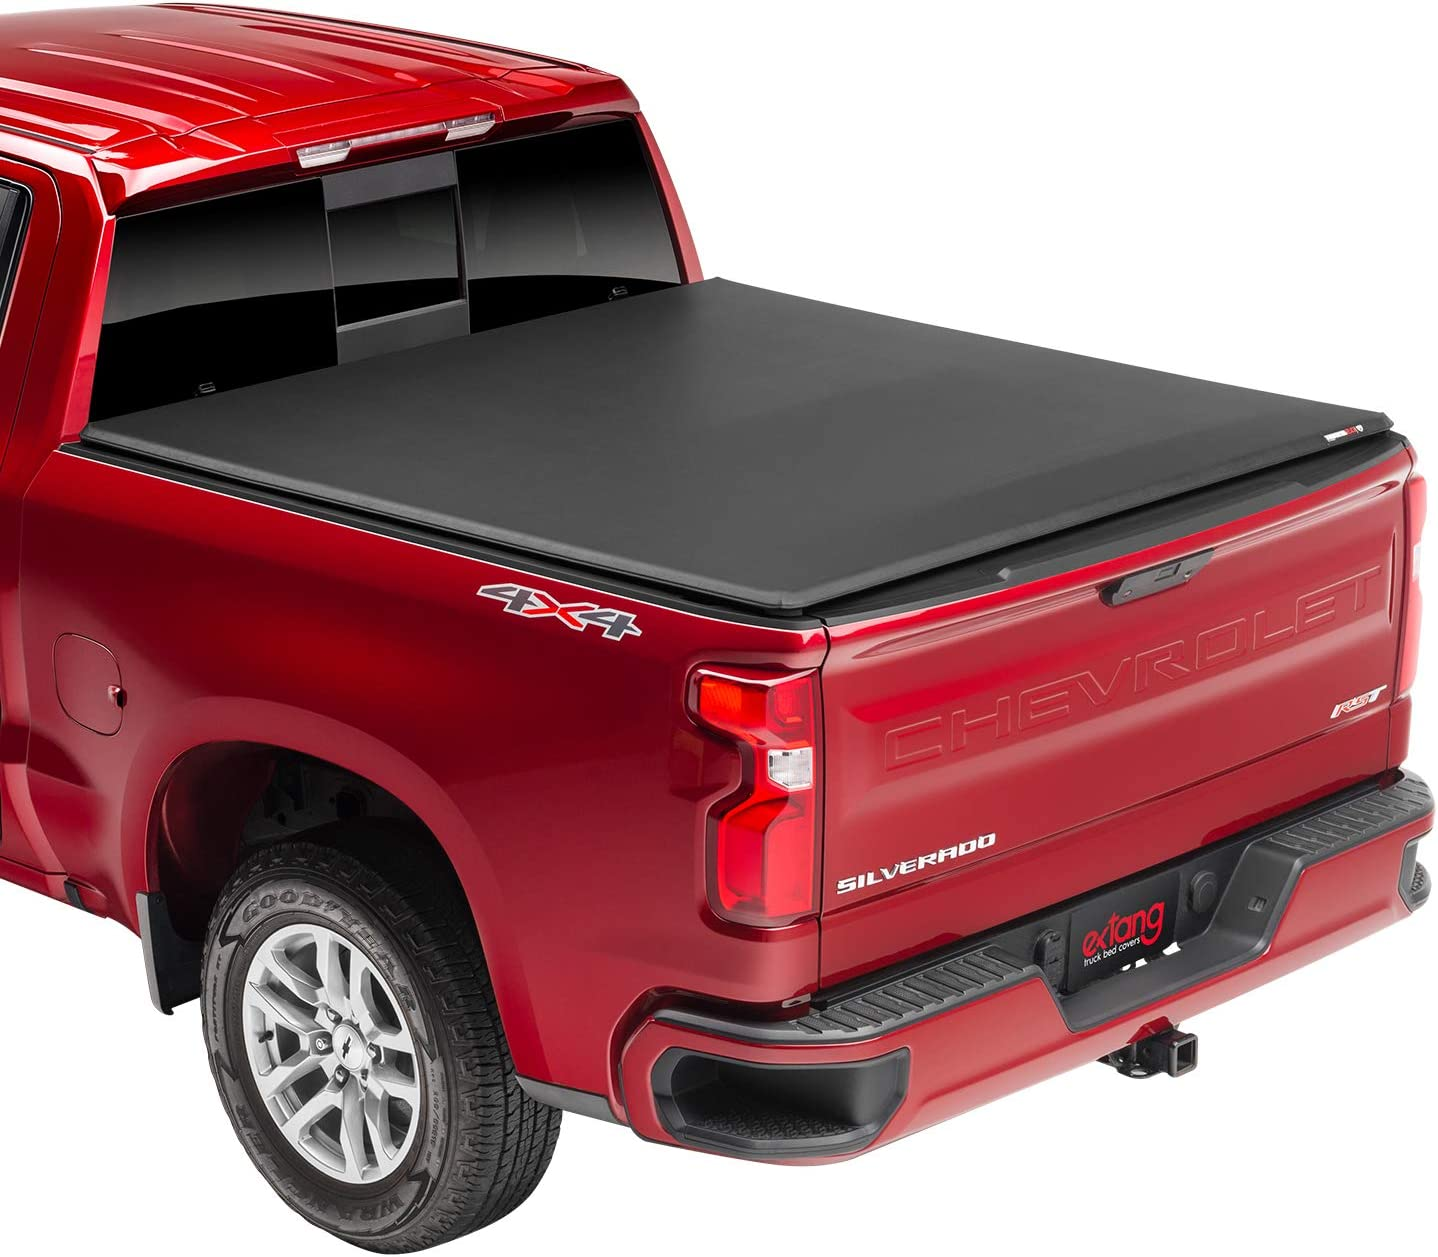 extang Trifecta 2.0 Manufacturer regenerated product Soft Ranking TOP18 Folding 92445 Cover Bed Truck Tonneau